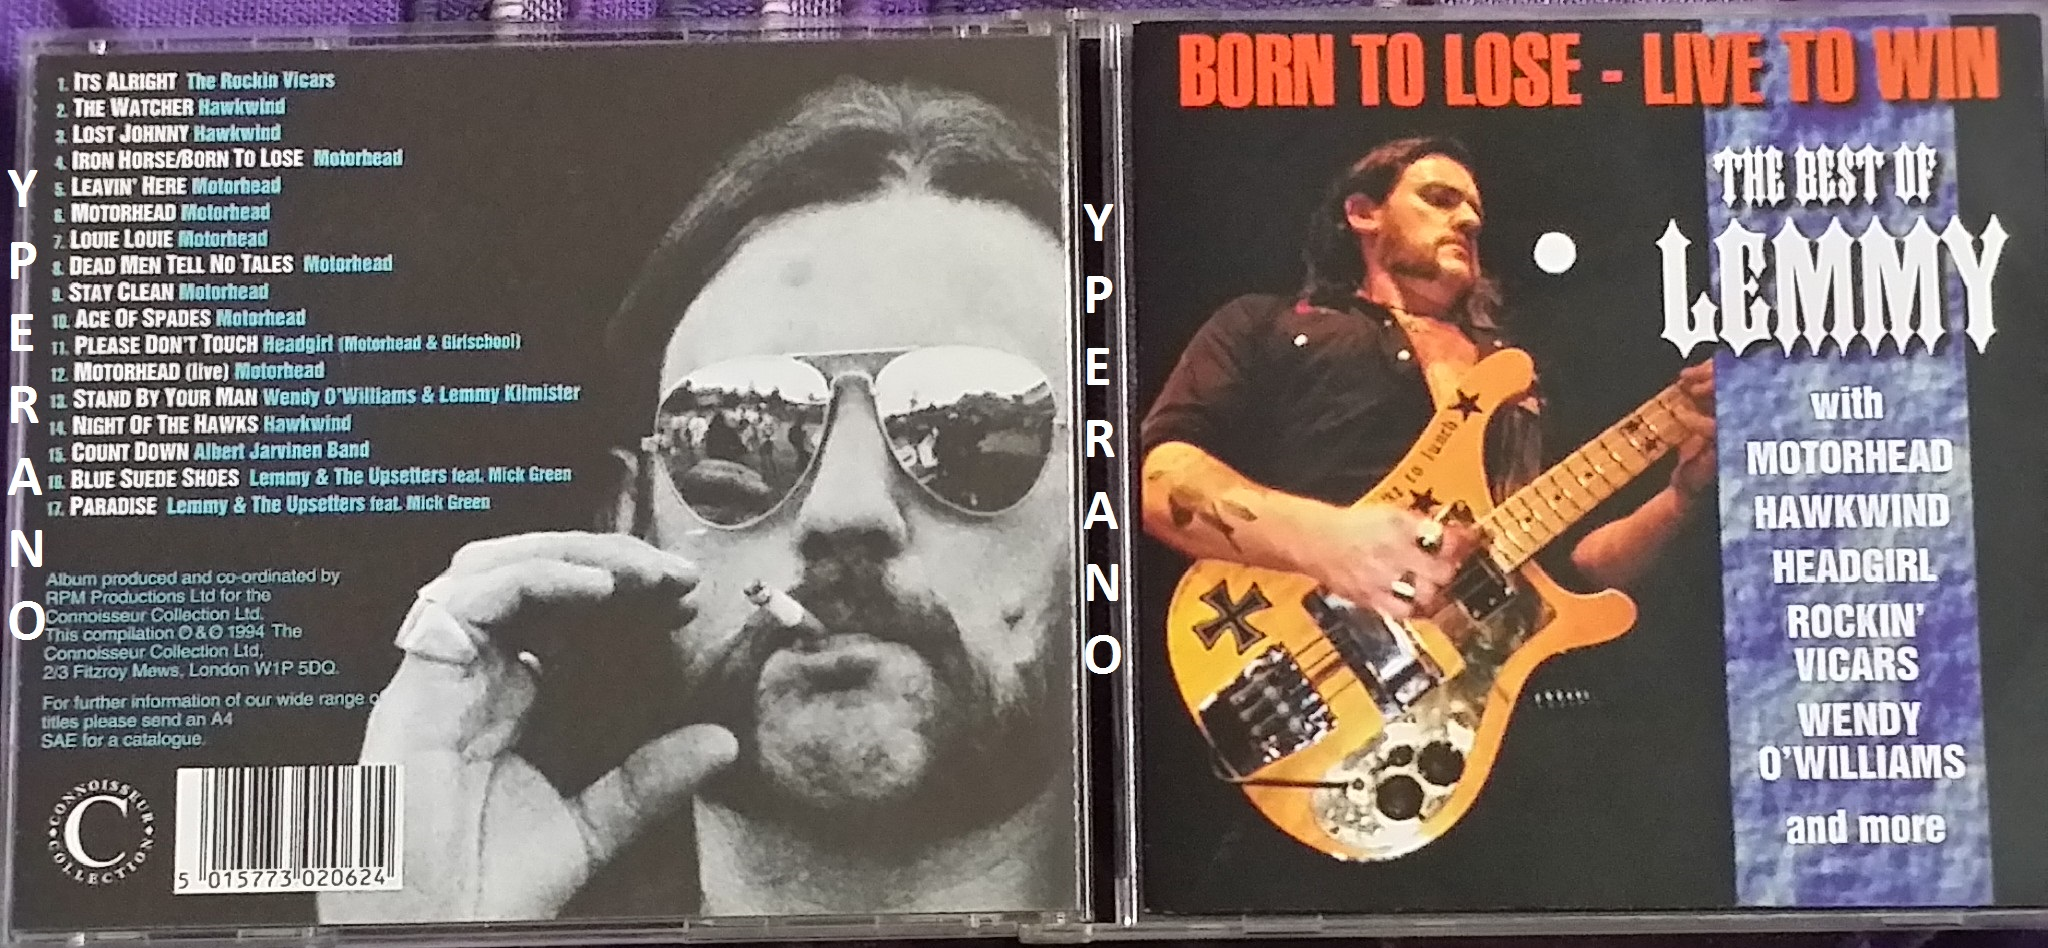 Motorhead Best Of Lemmy Born To Lose Live To Win Cd